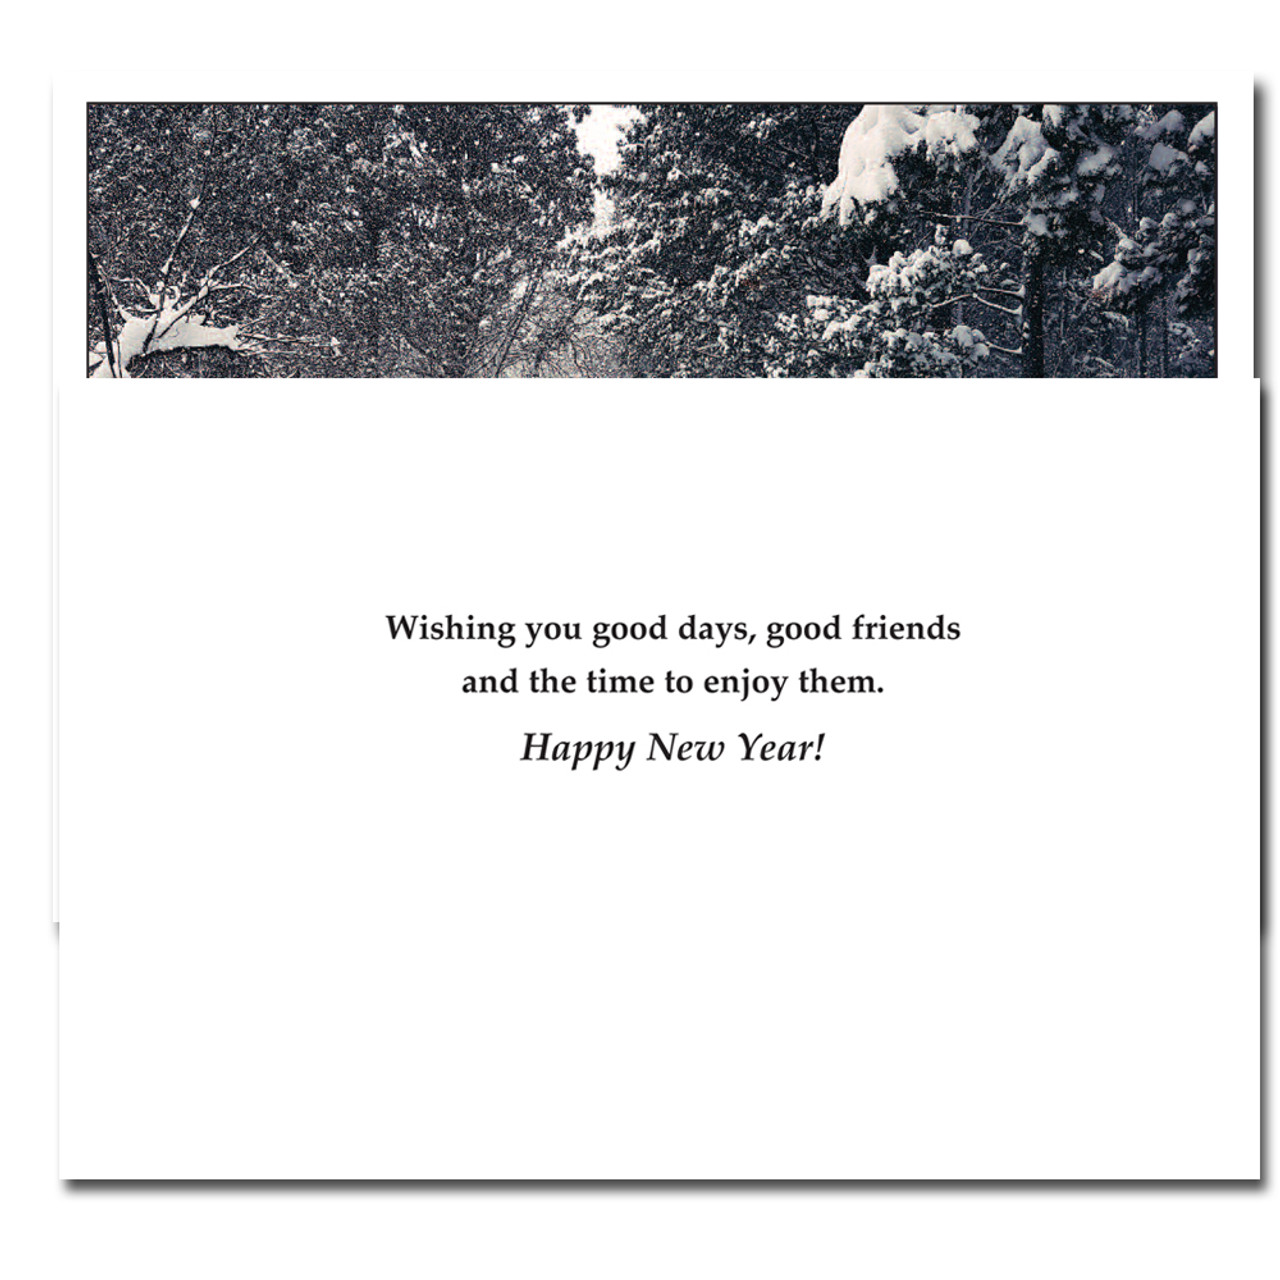 Good Friends New Year Card inside reads: Wishing you good days, good friends and the time to enjoy them. Happy New Year!